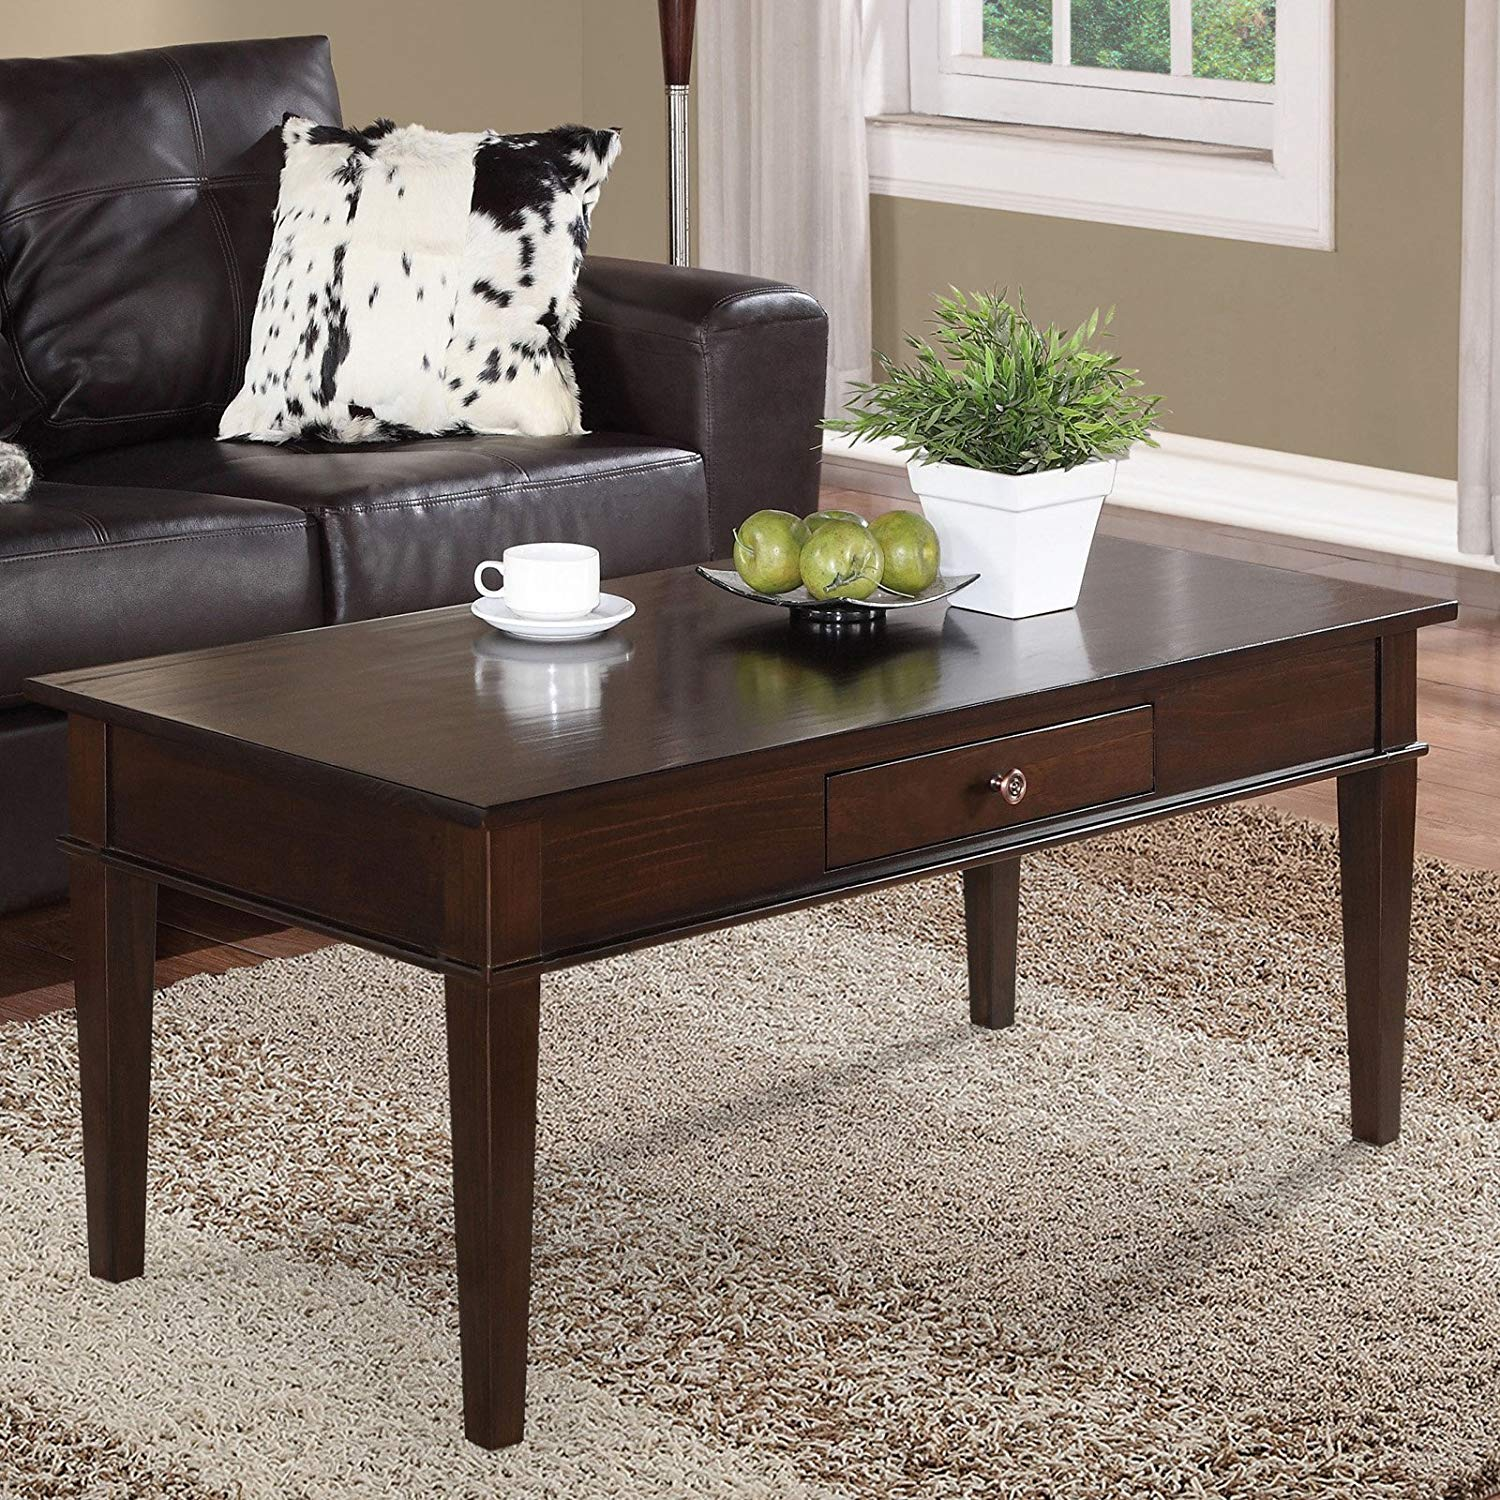 Coffee Table, Solid Wood Construction, Tobacco Brown, Contemporary Style, Tapered Legs, Bronze Round Knobs, Rectangle Shape, Bundle with Our Expert Guide with Tips for Home Arrangement